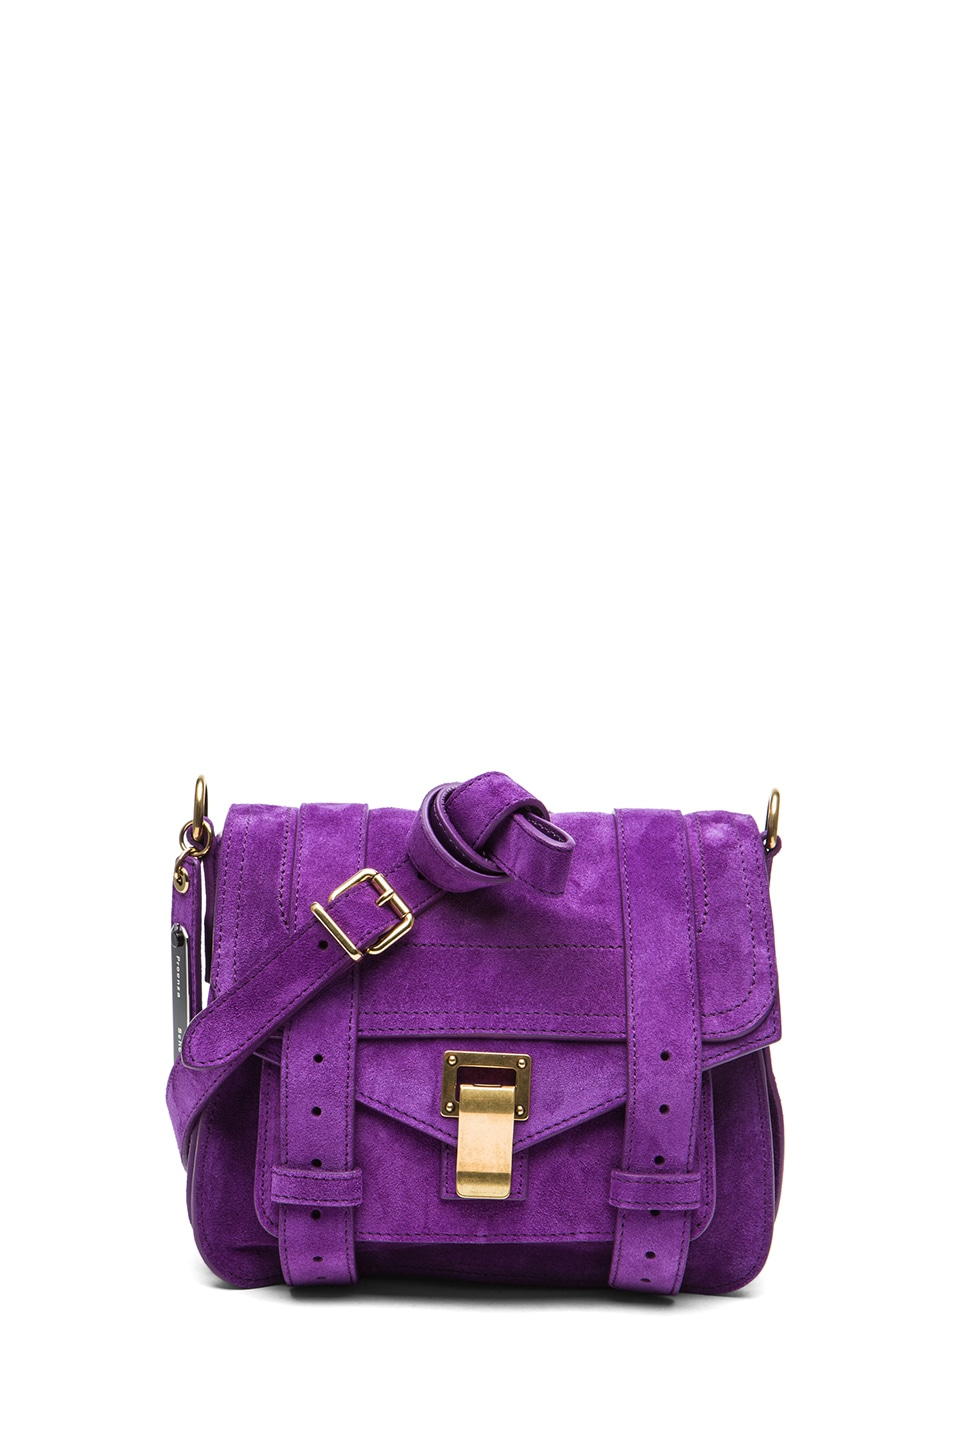 Image 1 of Proenza Schouler PS1 Suede Pouch in Veruca Salt